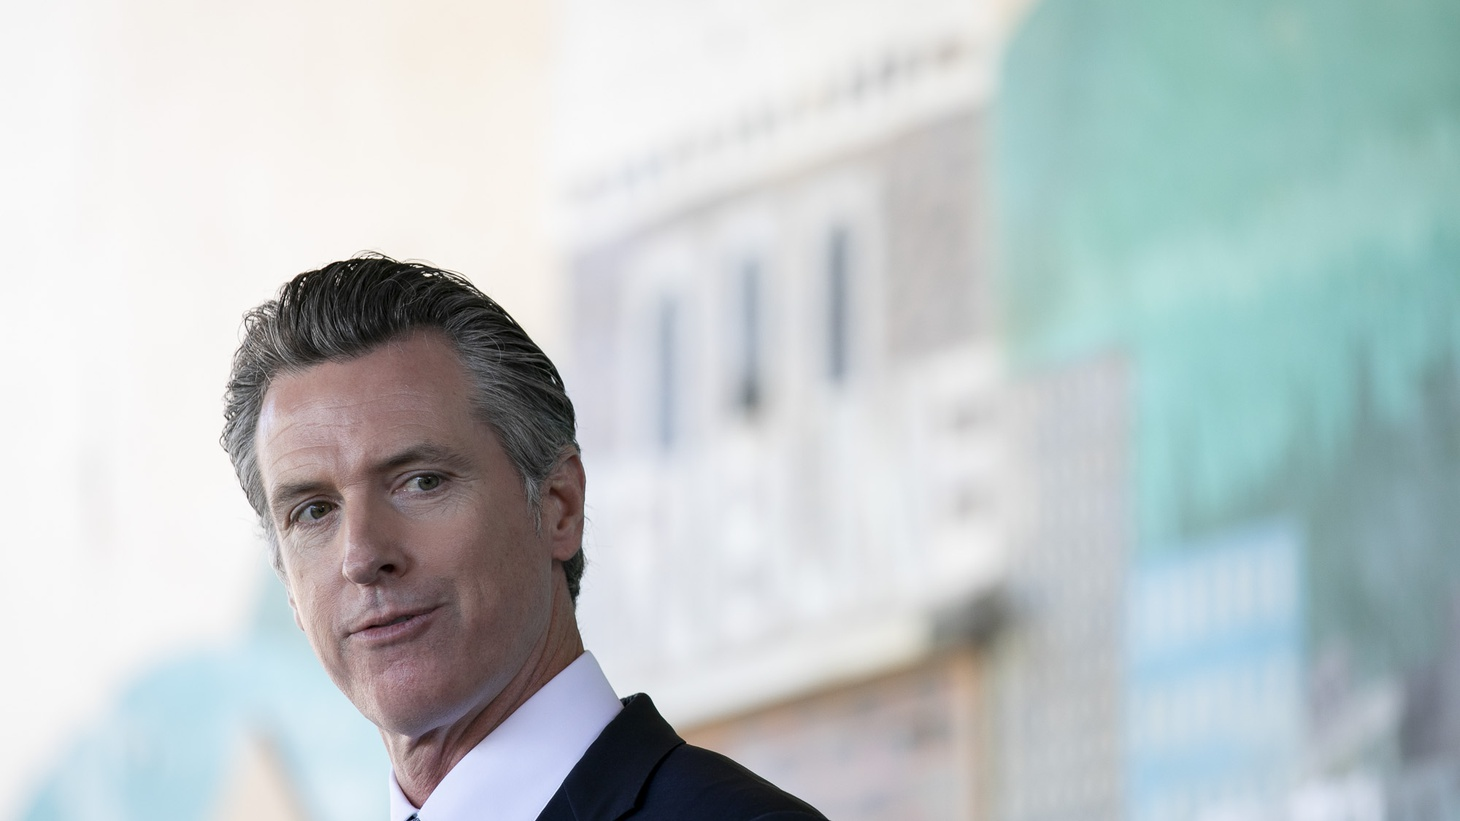 Gov. Gavin Newsom, facing a recall, prepares to speak at a press conference to announce a new requirement for all school teachers and employees to show proof of vaccination or to undergo weekly COVID-19 testing, at Carl B. Munck Elementary School in Oakland on Aug. 11, 2021.